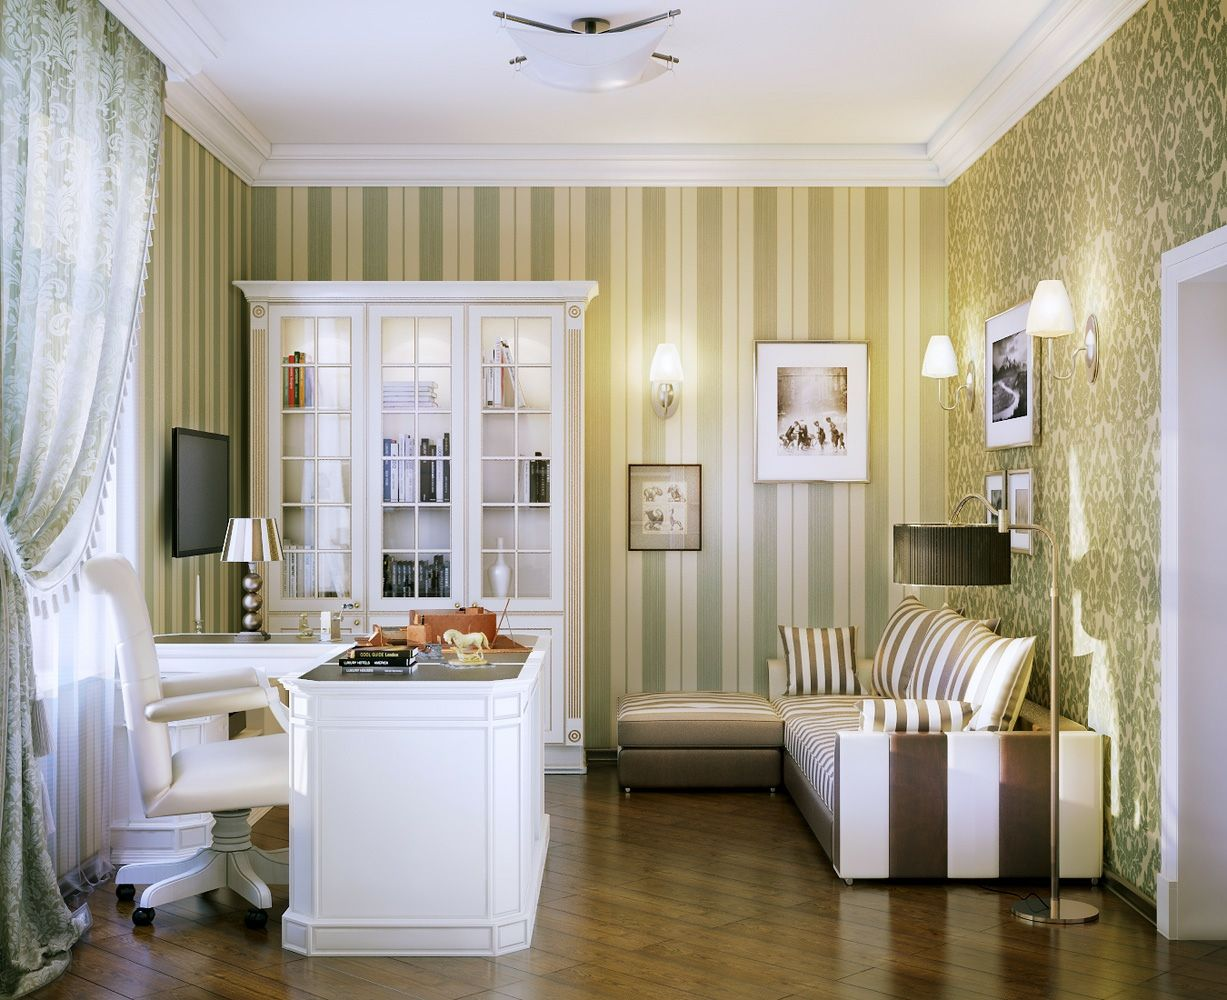 Office  workspace cool home and break room ideas luxury design idea with striped wall white furniture also best tenore images on pinterest mesas spaces rh